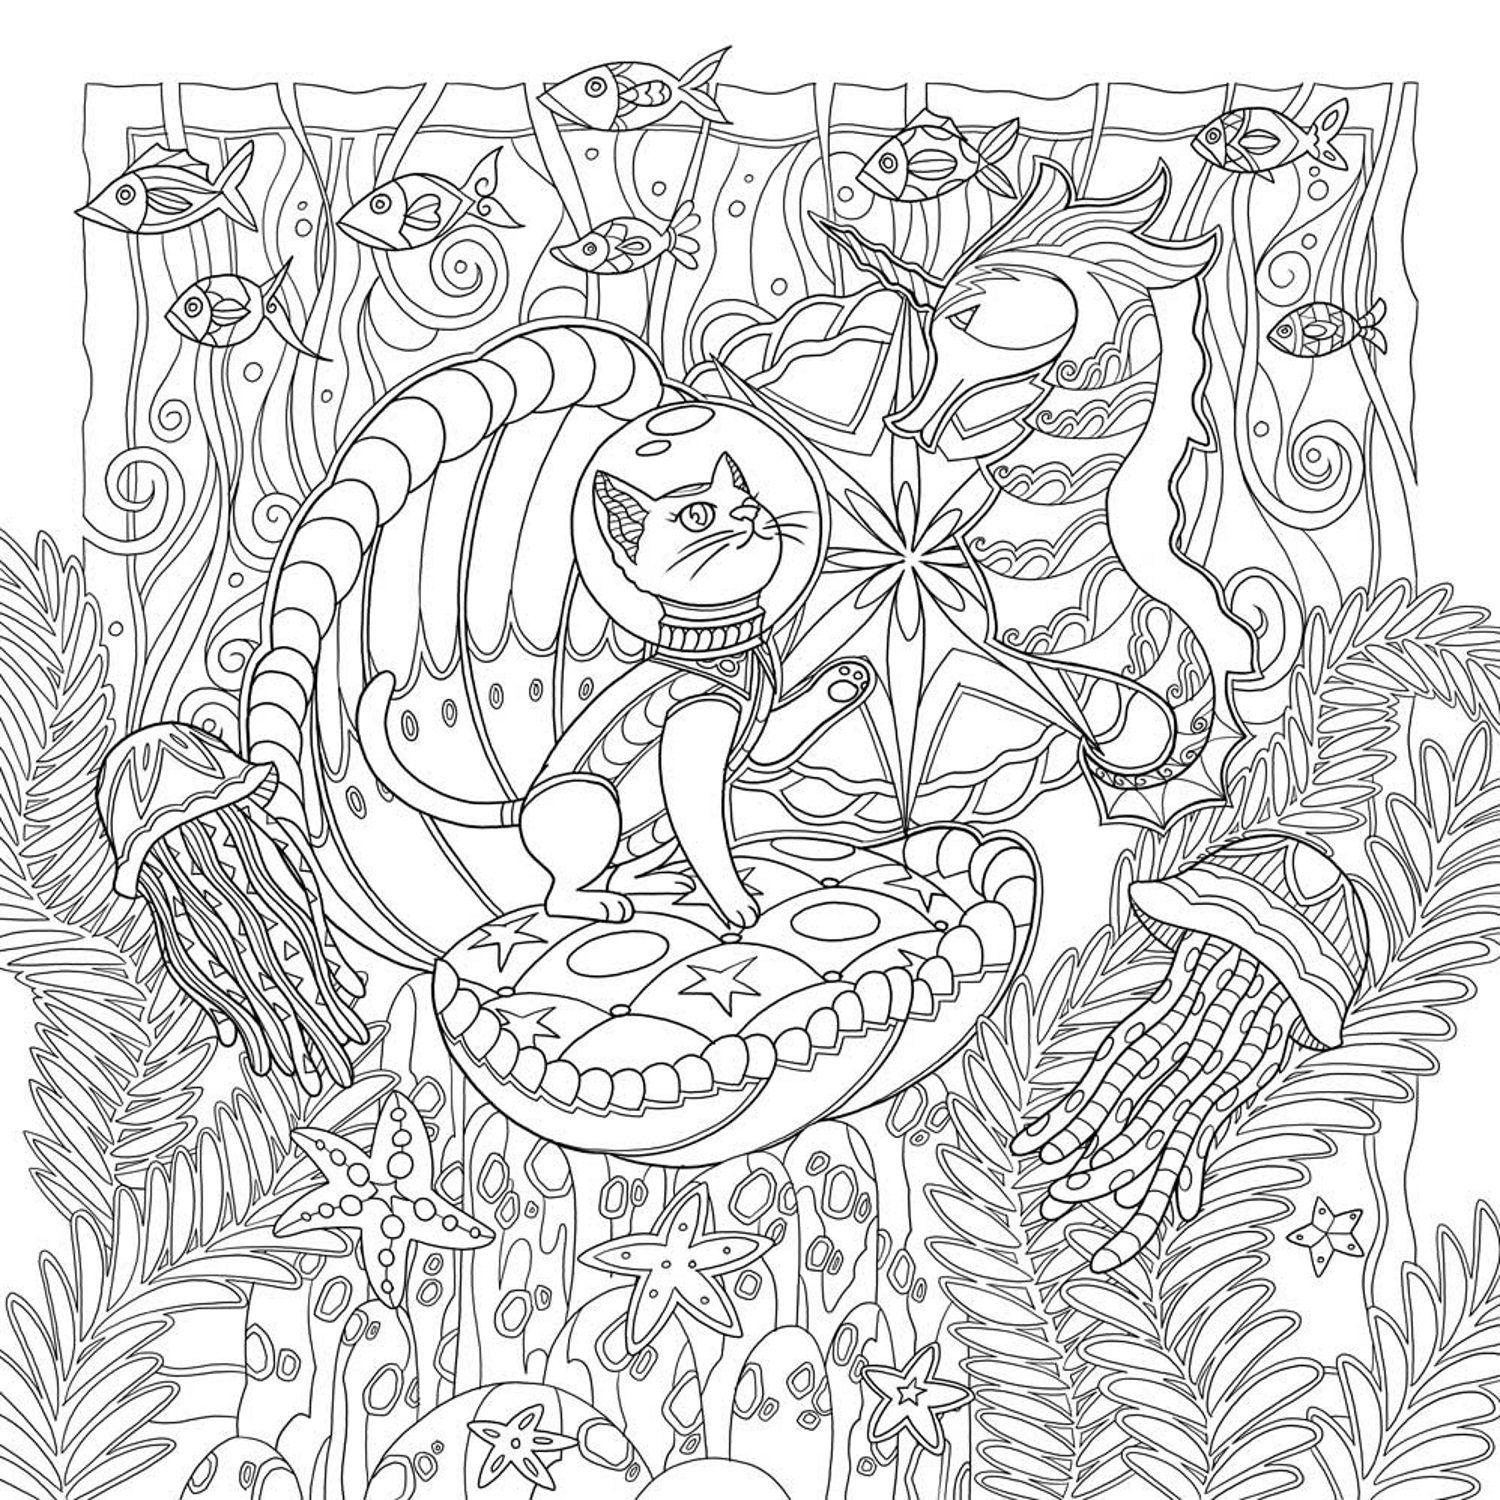 Mystical Cats In Secret Places A Cat Lover S Coloring Book Honoel 9781626923959 Books Amazon Ca Cat Coloring Book Coloring Books Animal Coloring Pages